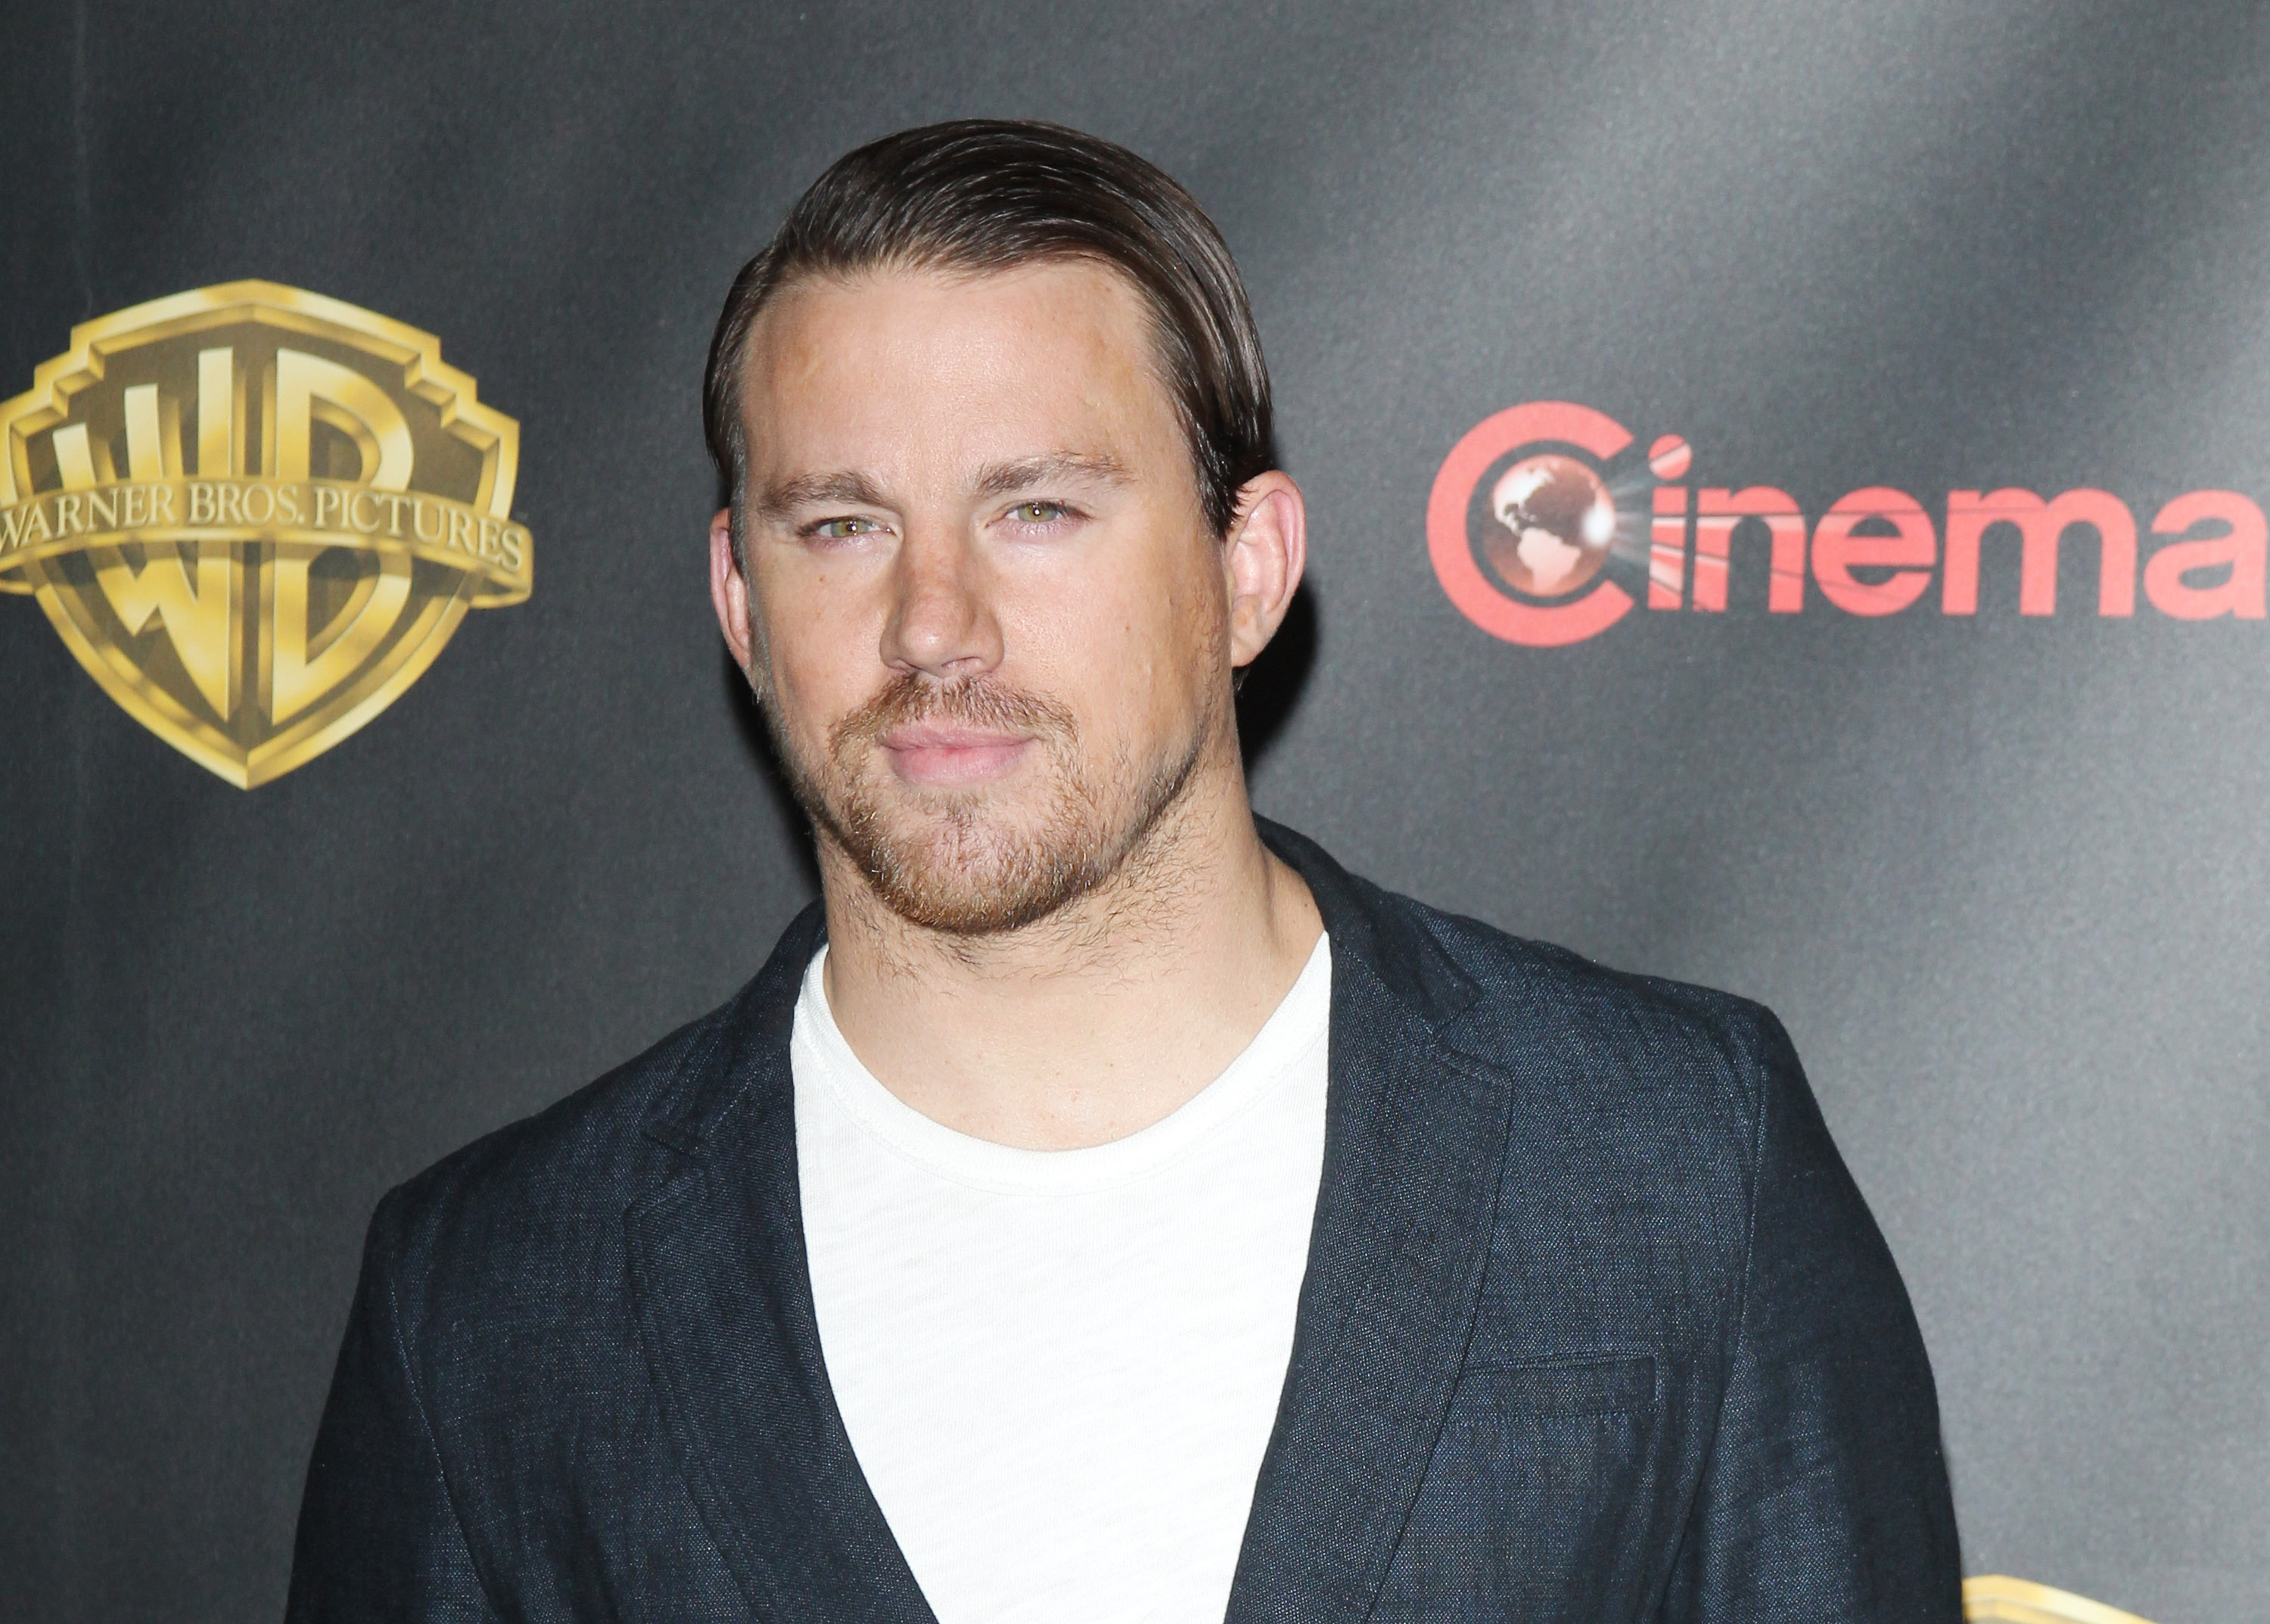 LAS VEGAS, NV - APRIL 21:  Channing Tatum arrives at 2015 CinemaCon - Warner Bros. Presents The Big Picture held at Caesars Palace Resorts and Casino on April 21, 2015 in Las Vegas, Nevada.  (Photo by Michael Tran/FilmMagic)